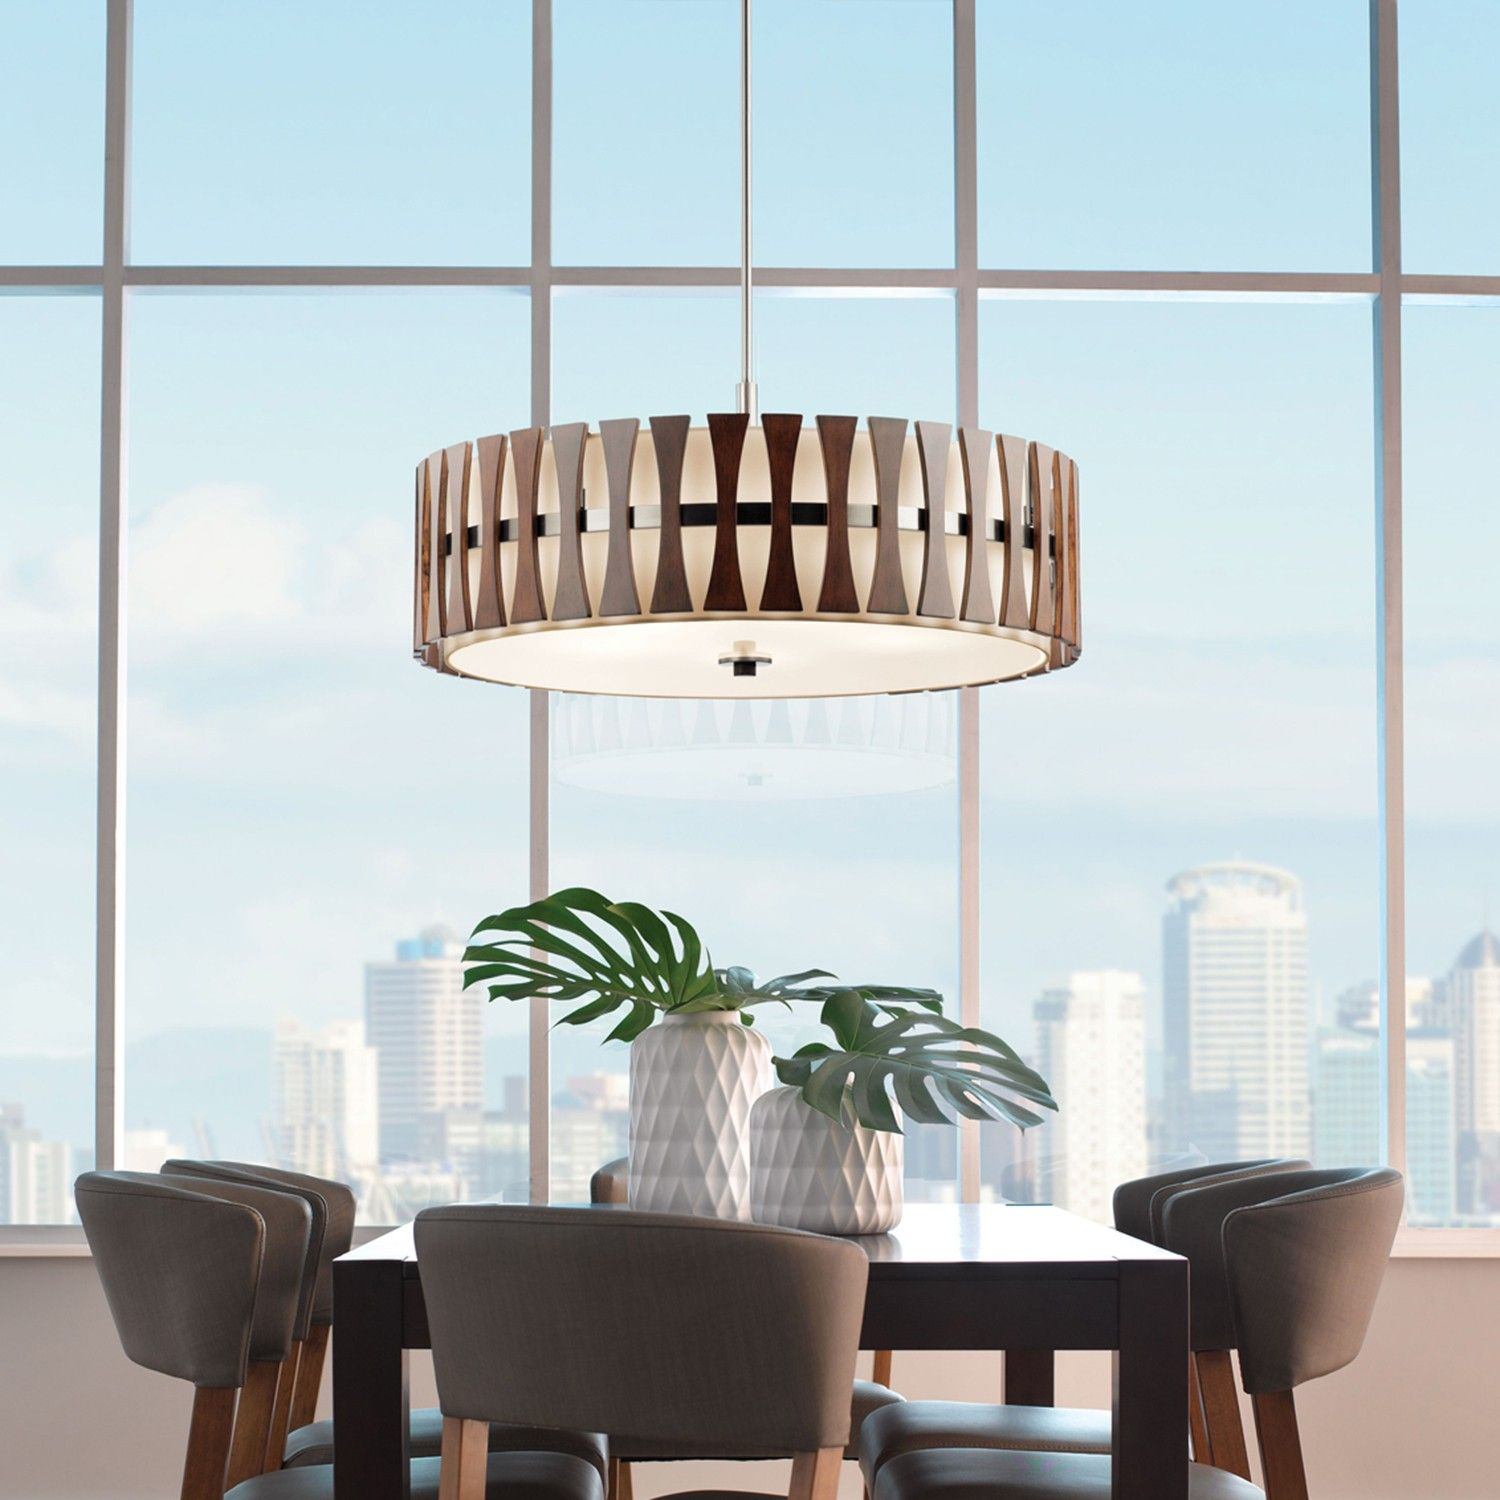 Kichler Dining Room Lighting Captivating Introducing Kichler Modern Lighting  Pendant Lighting Modern Decorating Inspiration